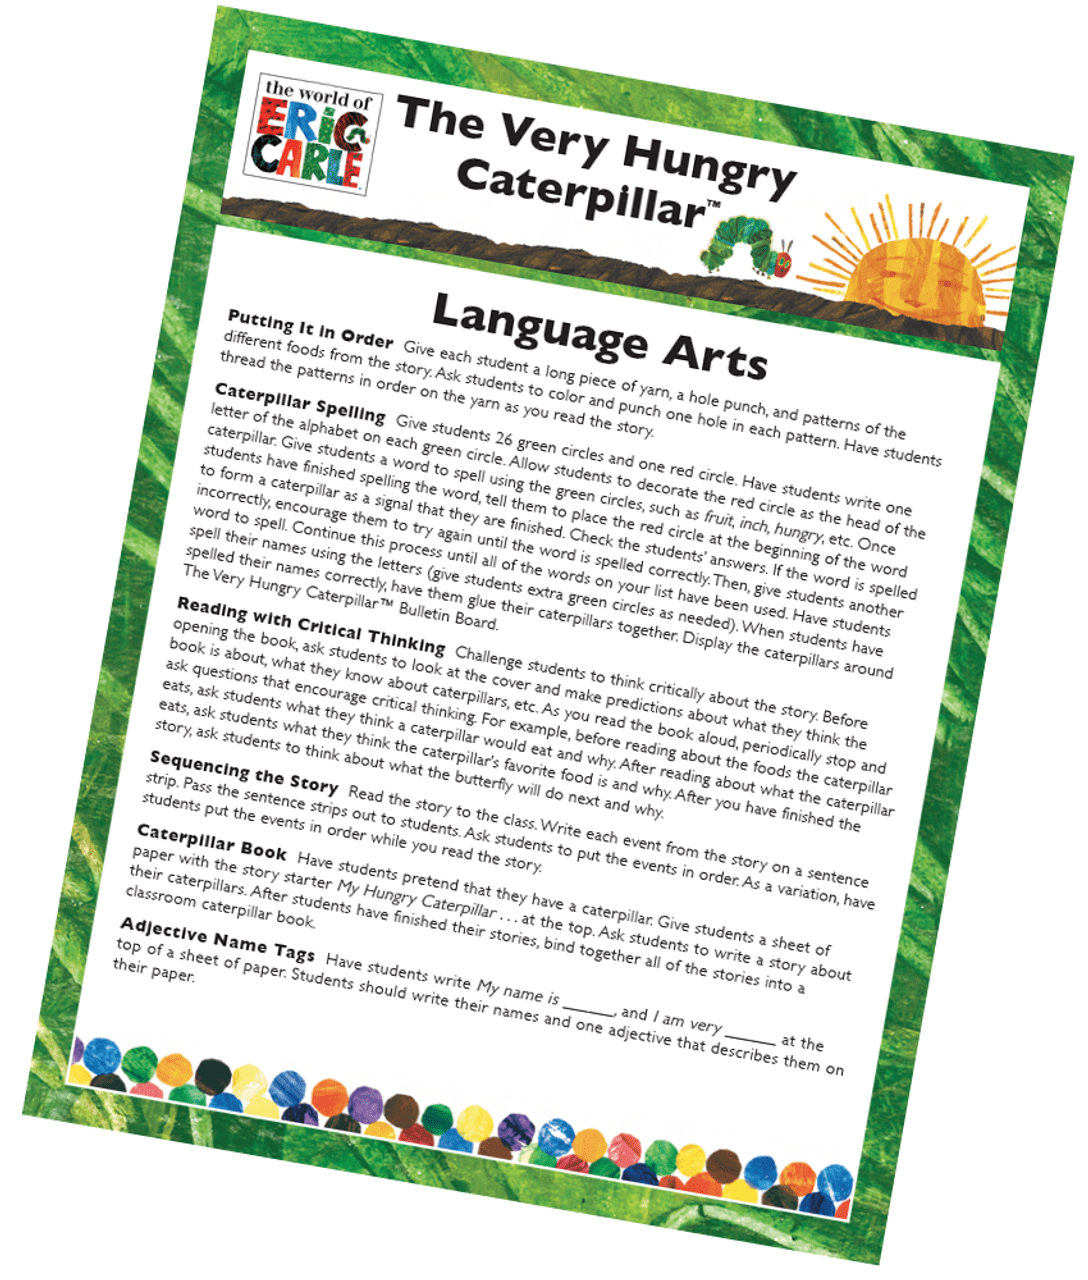 hight resolution of The Very Hungry Caterpillar Language Arts Activity Free Printable   Carson  Dellosa